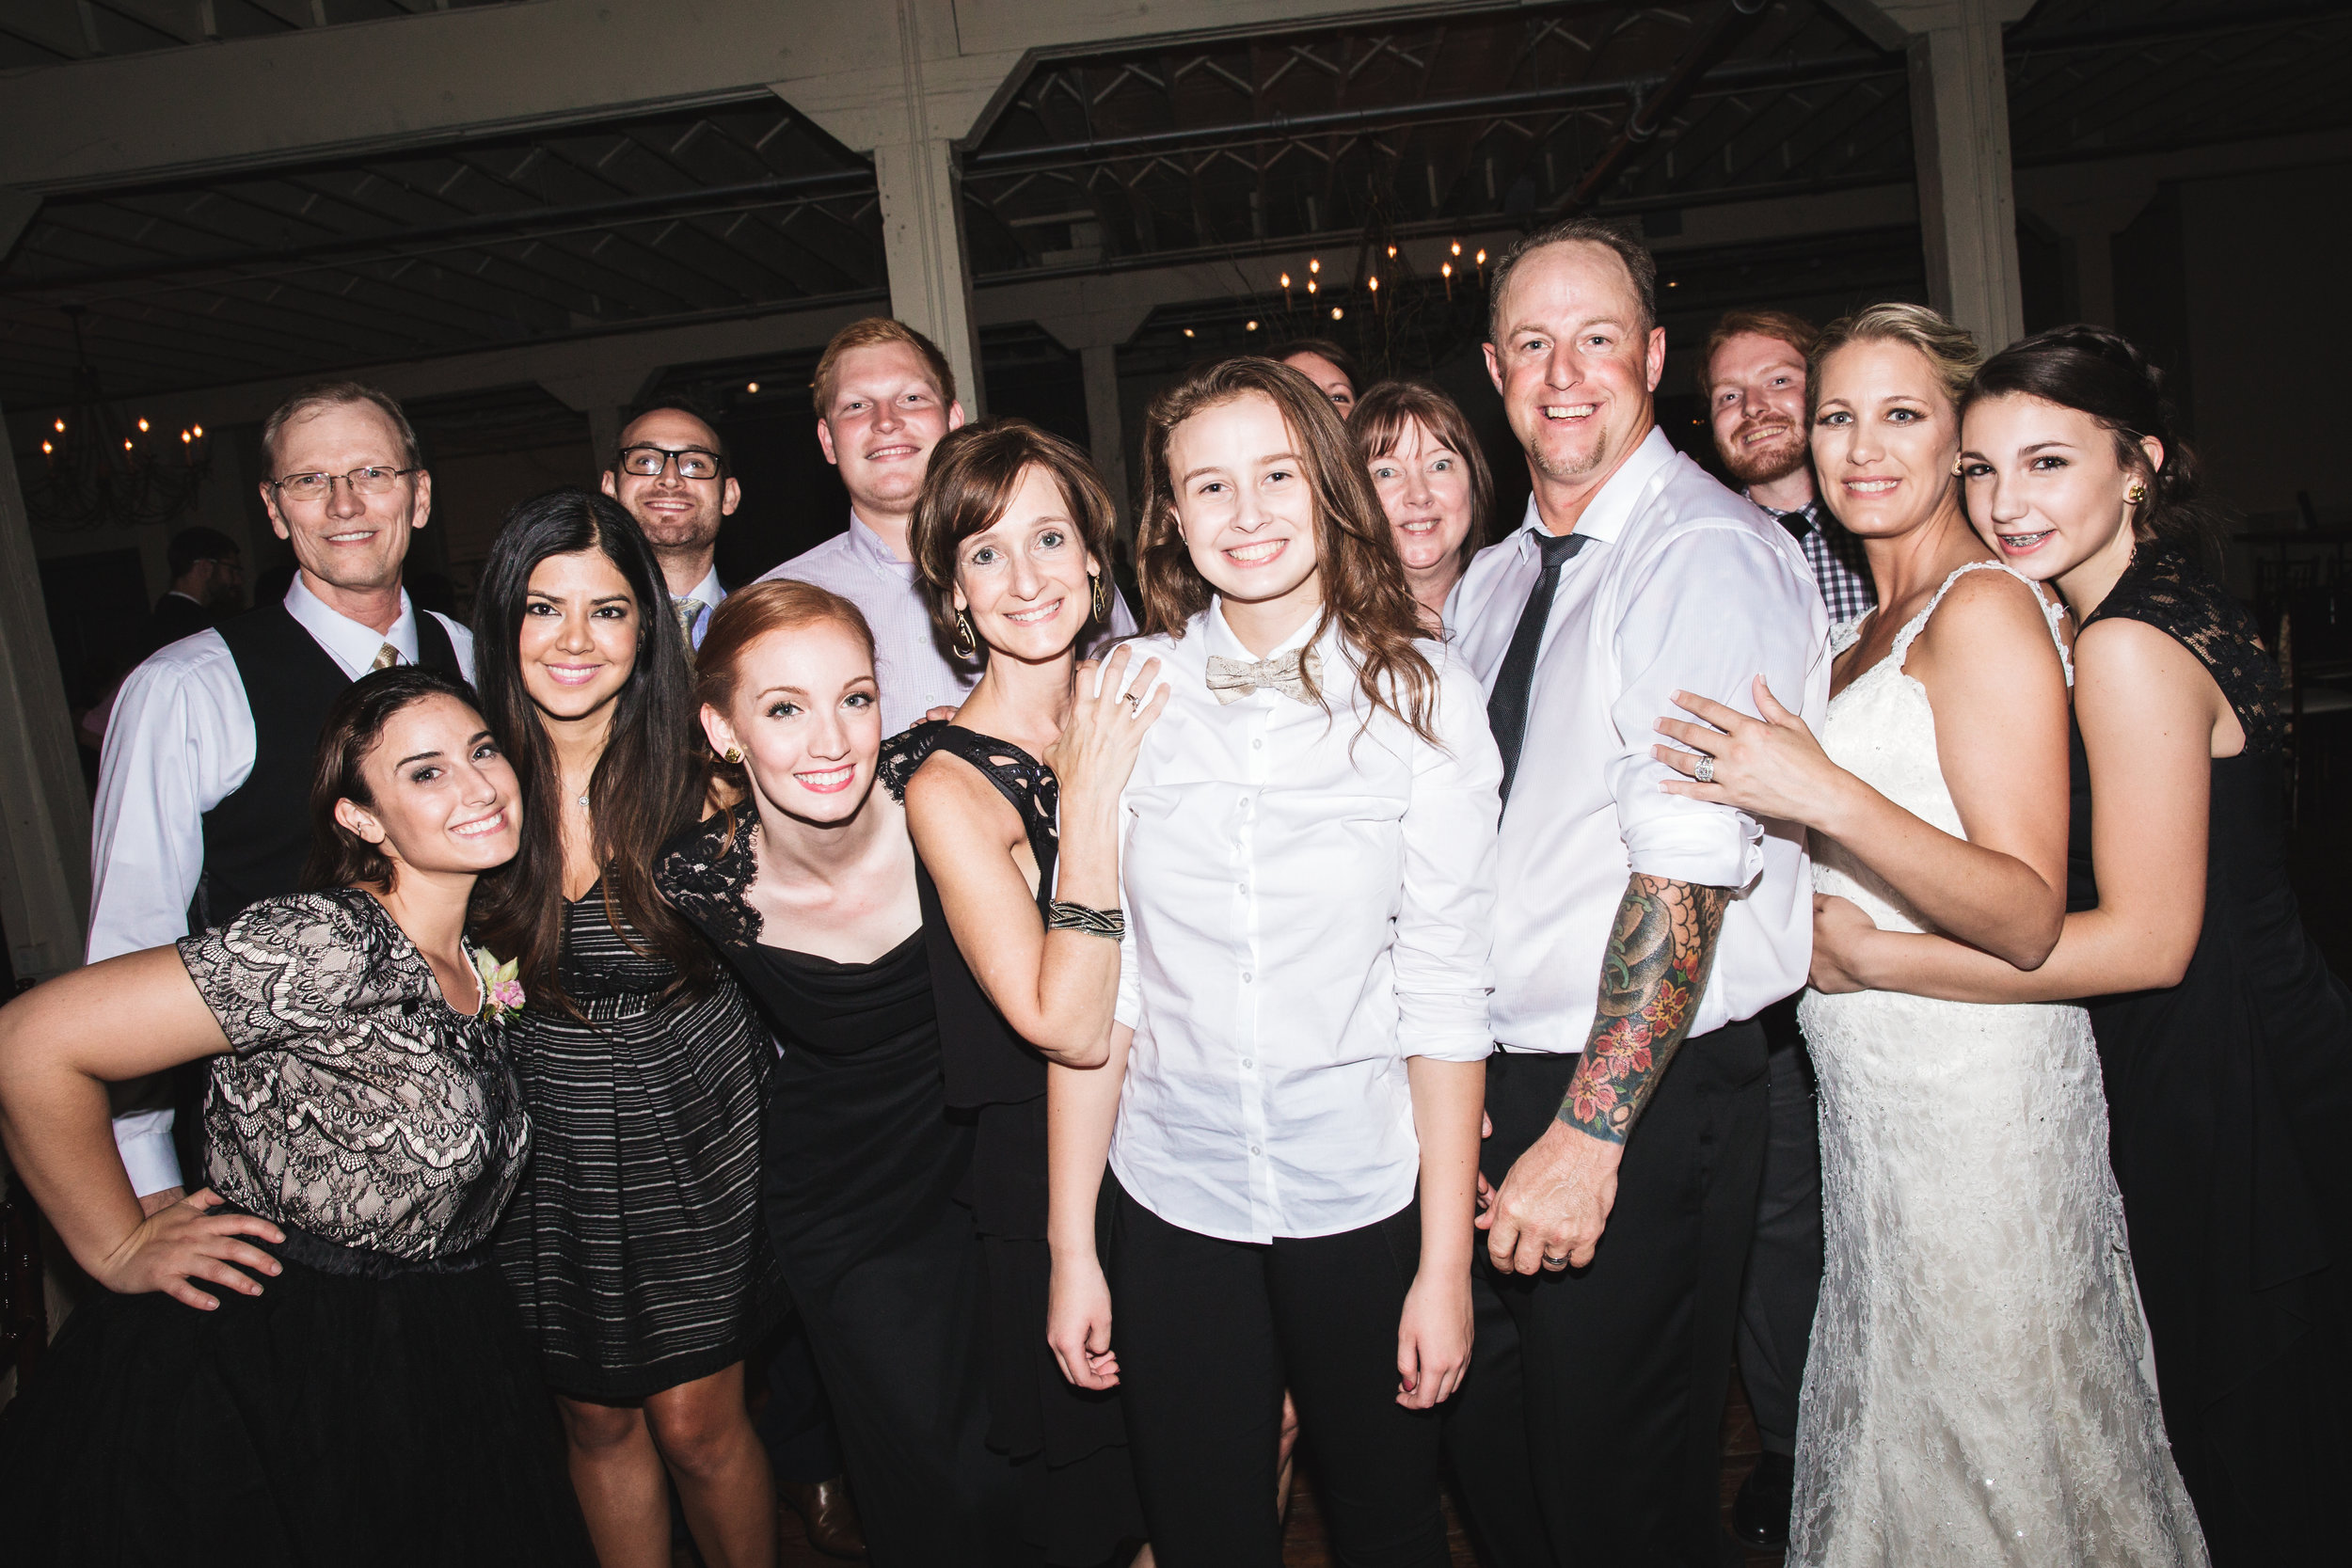 Wedding_Photographers_Fort_Worth_TX.jpg